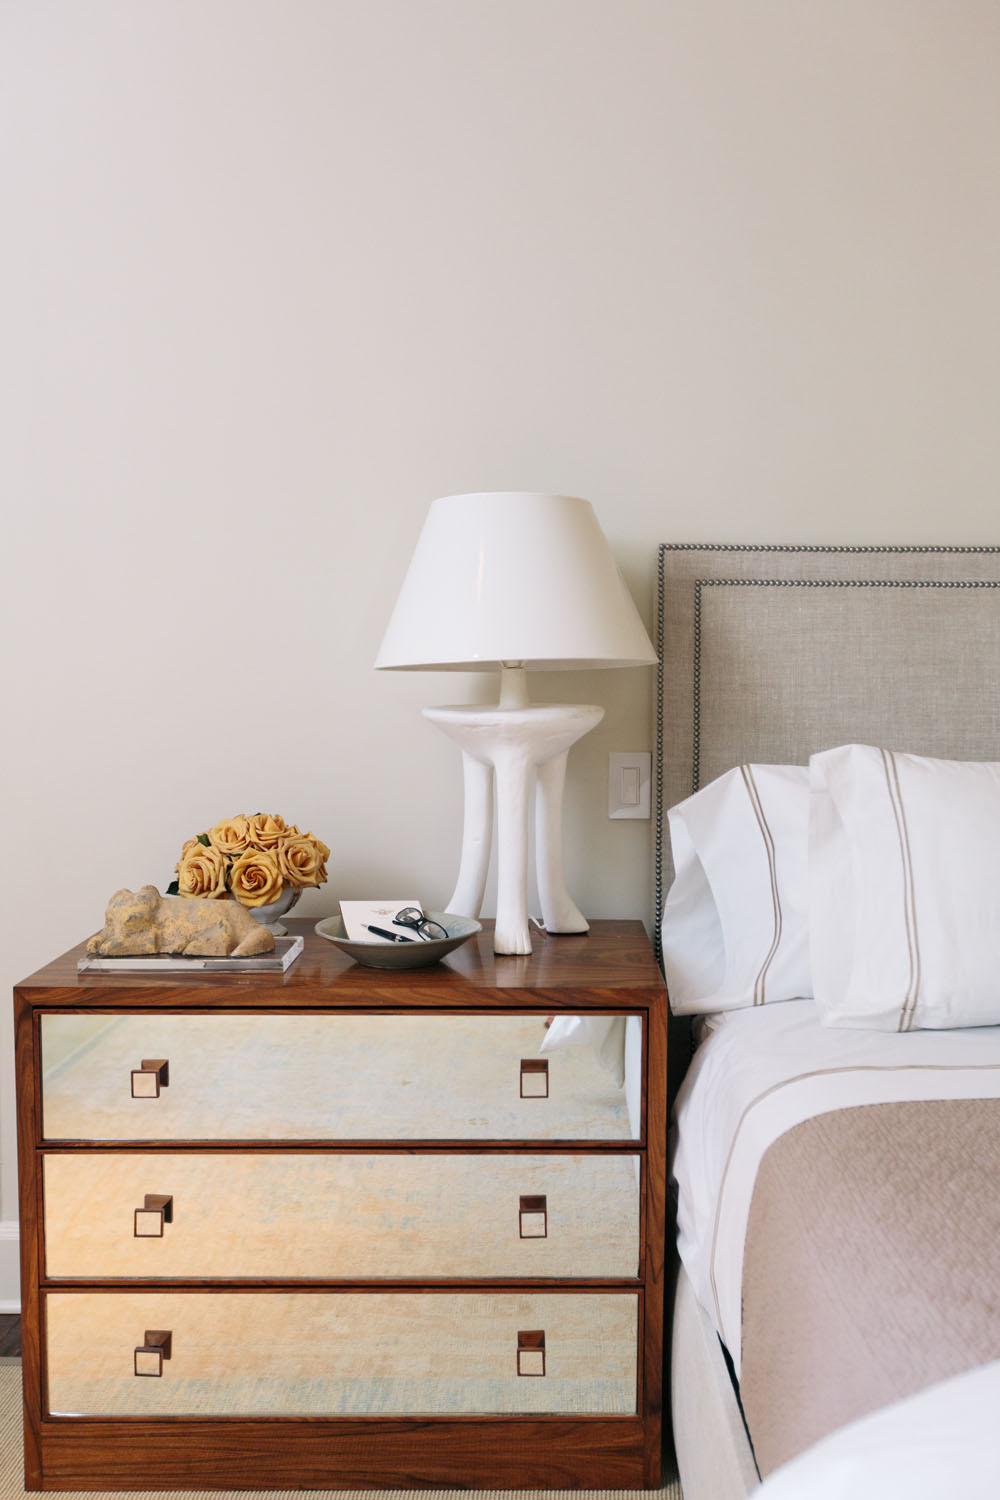 nightstand decor with tray and lamp